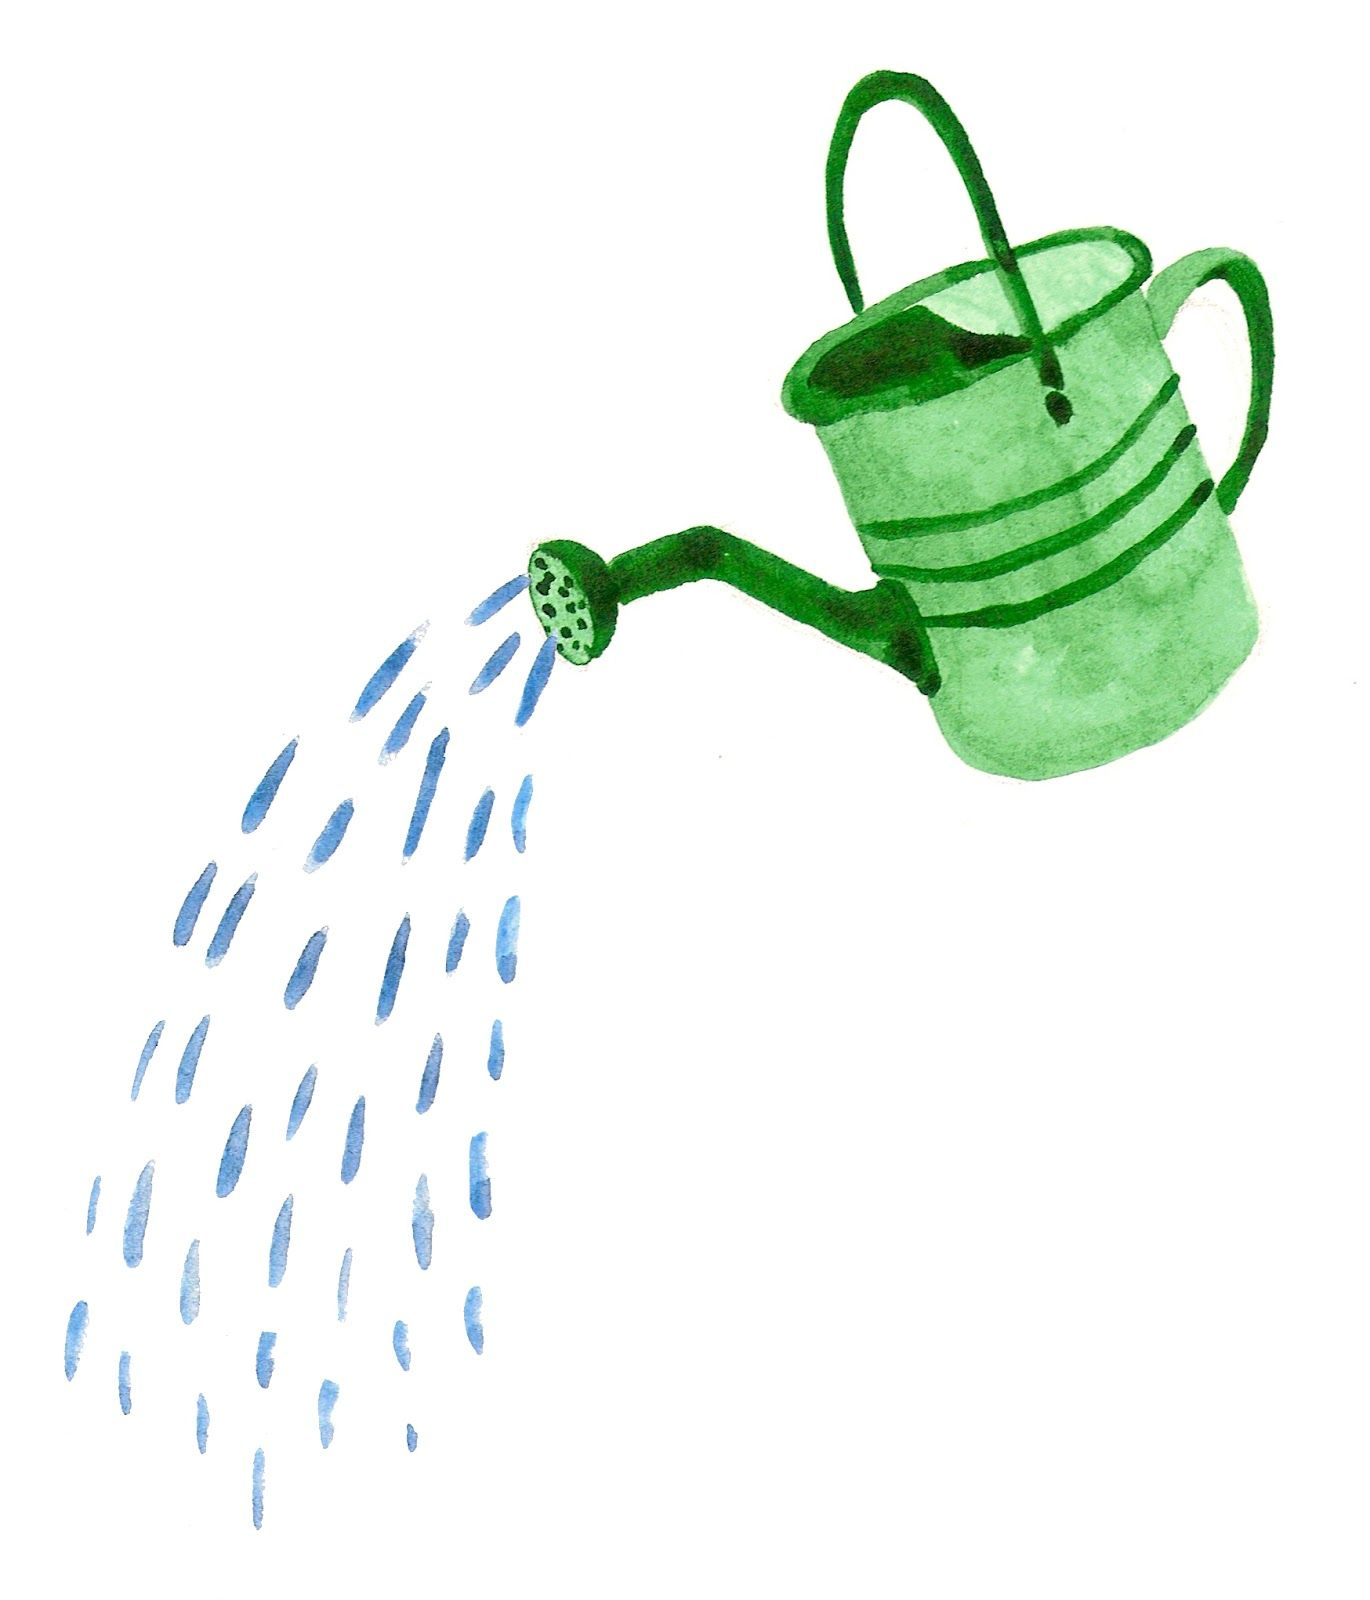 Watering can illustration clipart 3.